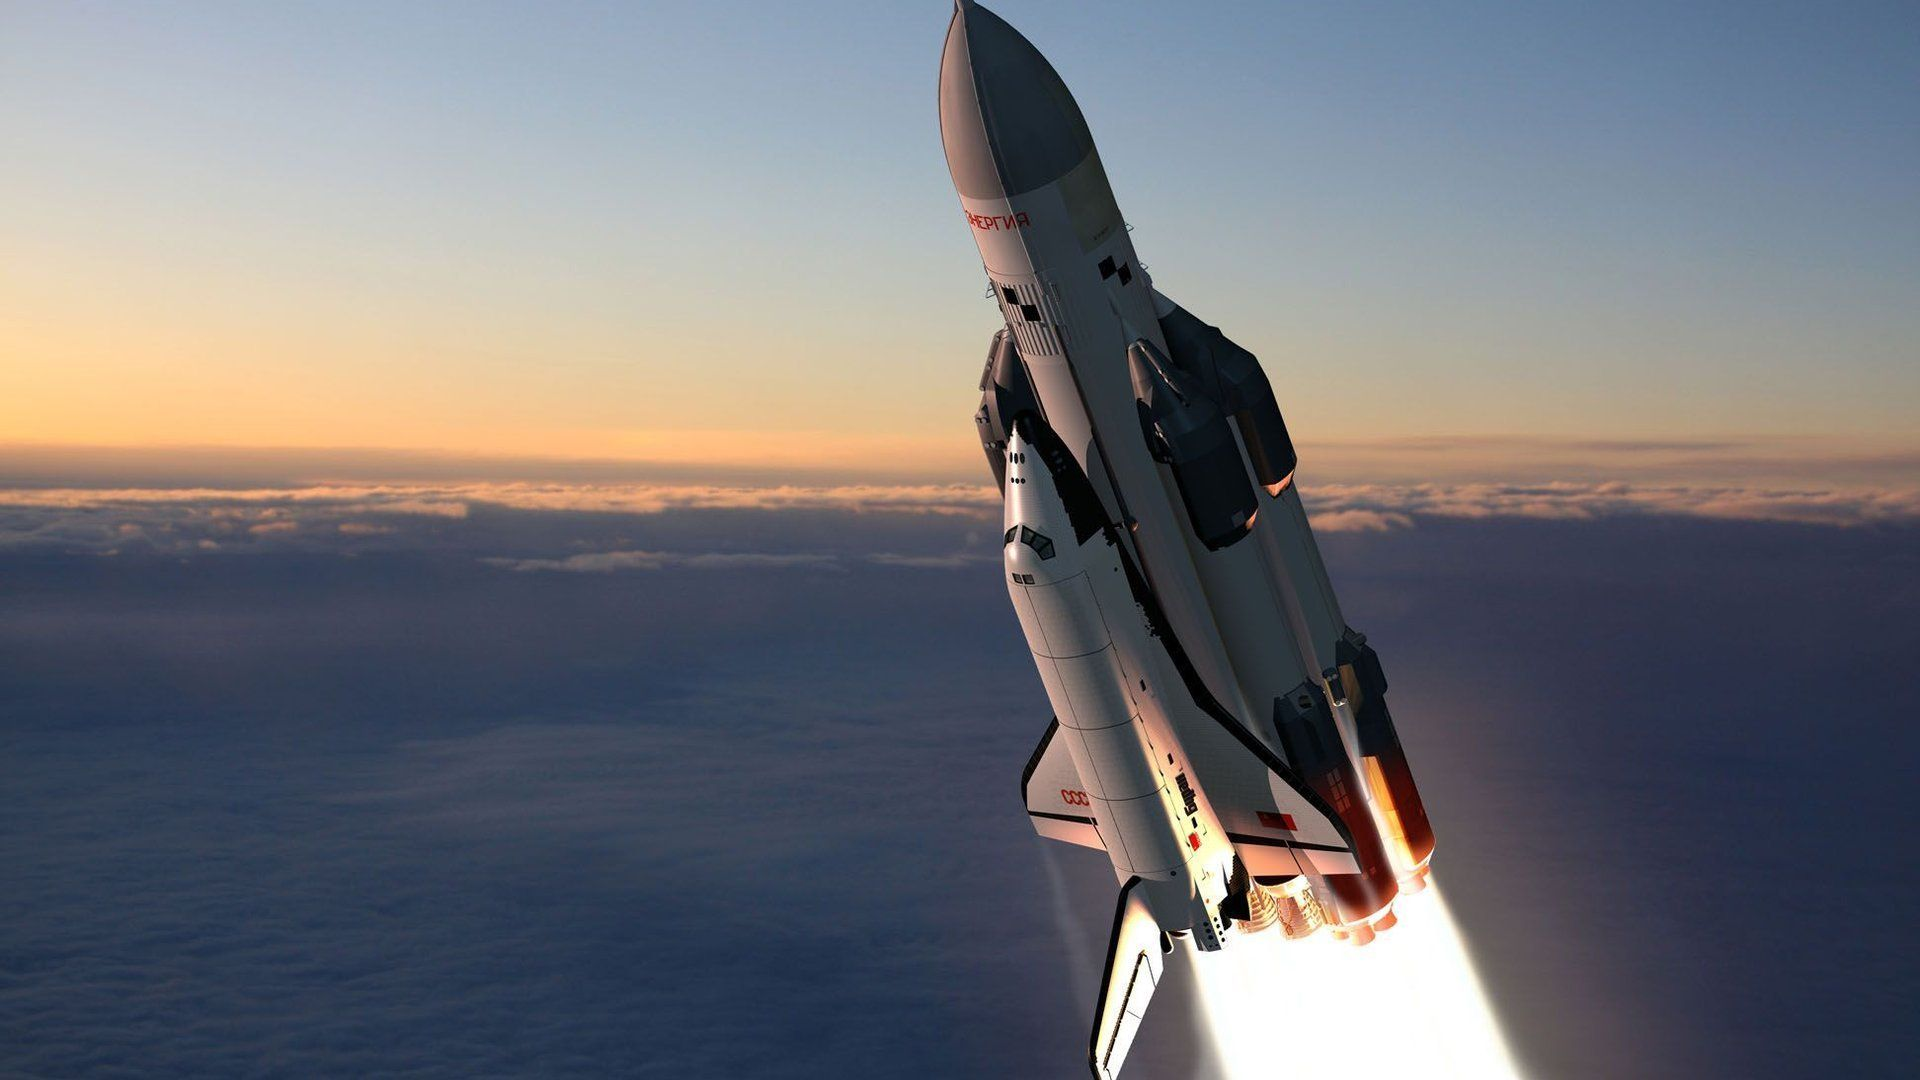 Rocket Wallpapers Space Shuttle Space Program Space And Astronomy